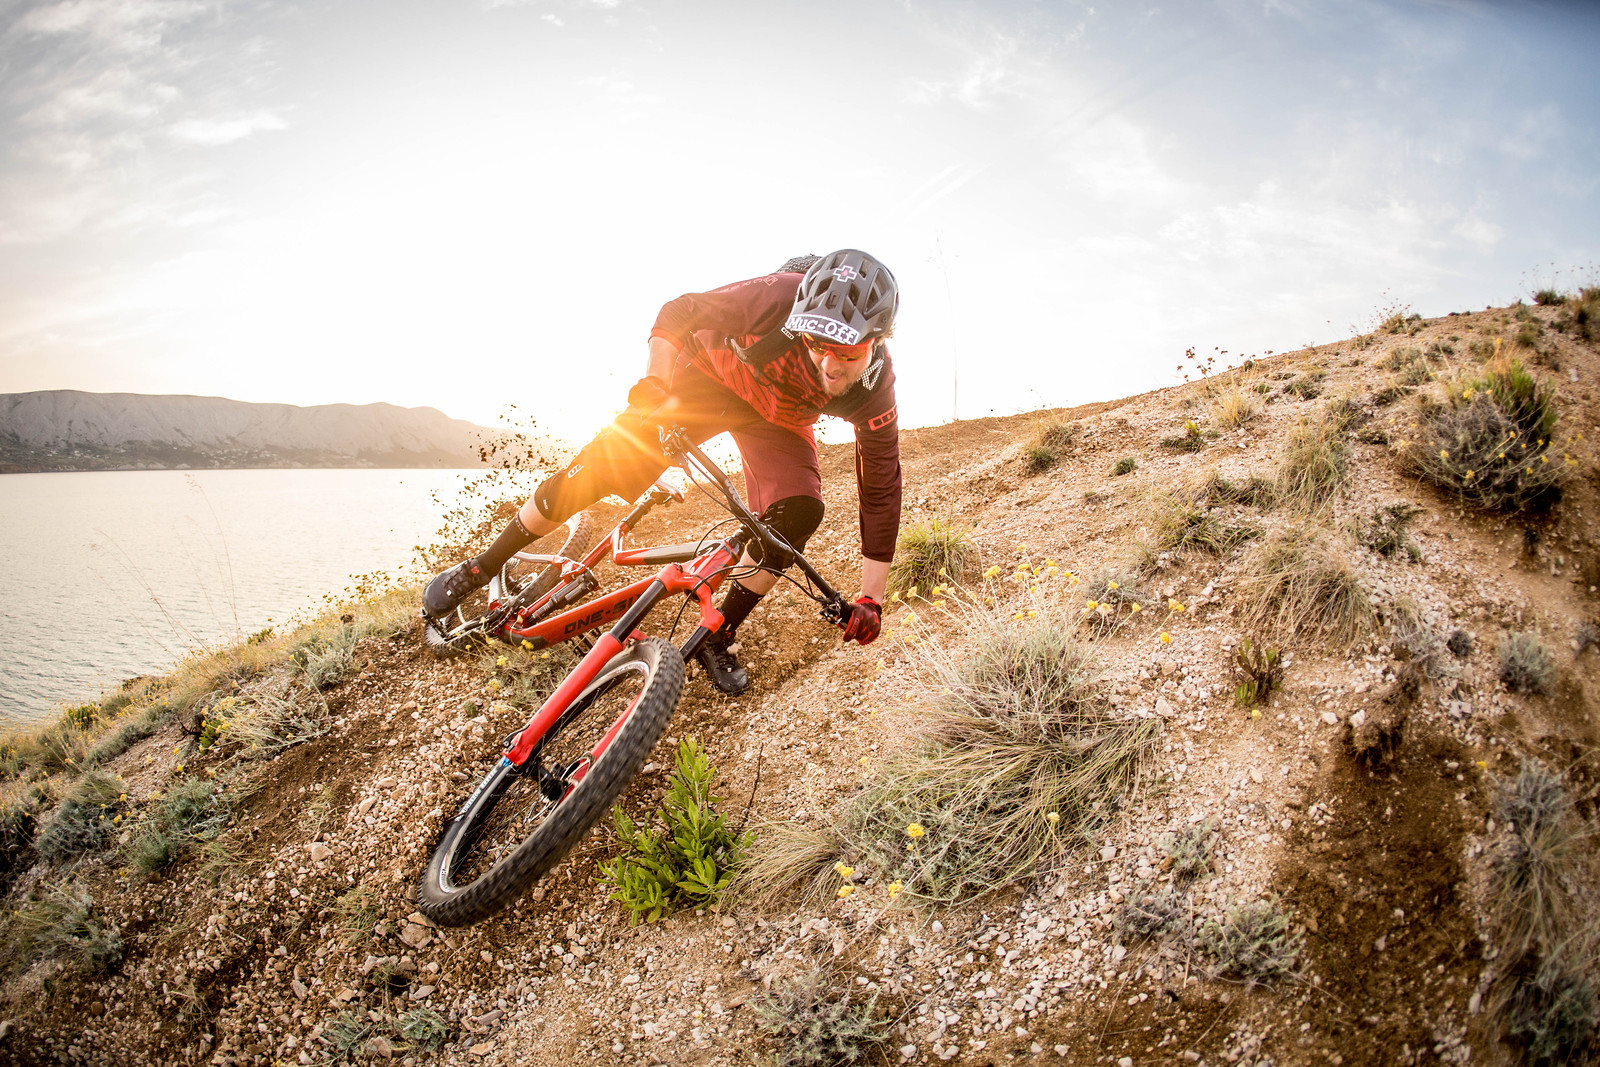 sunset drift - getting loose all the way down to the sea - Hannes Klausner - Mountain Biking Pictures - Vital MTB